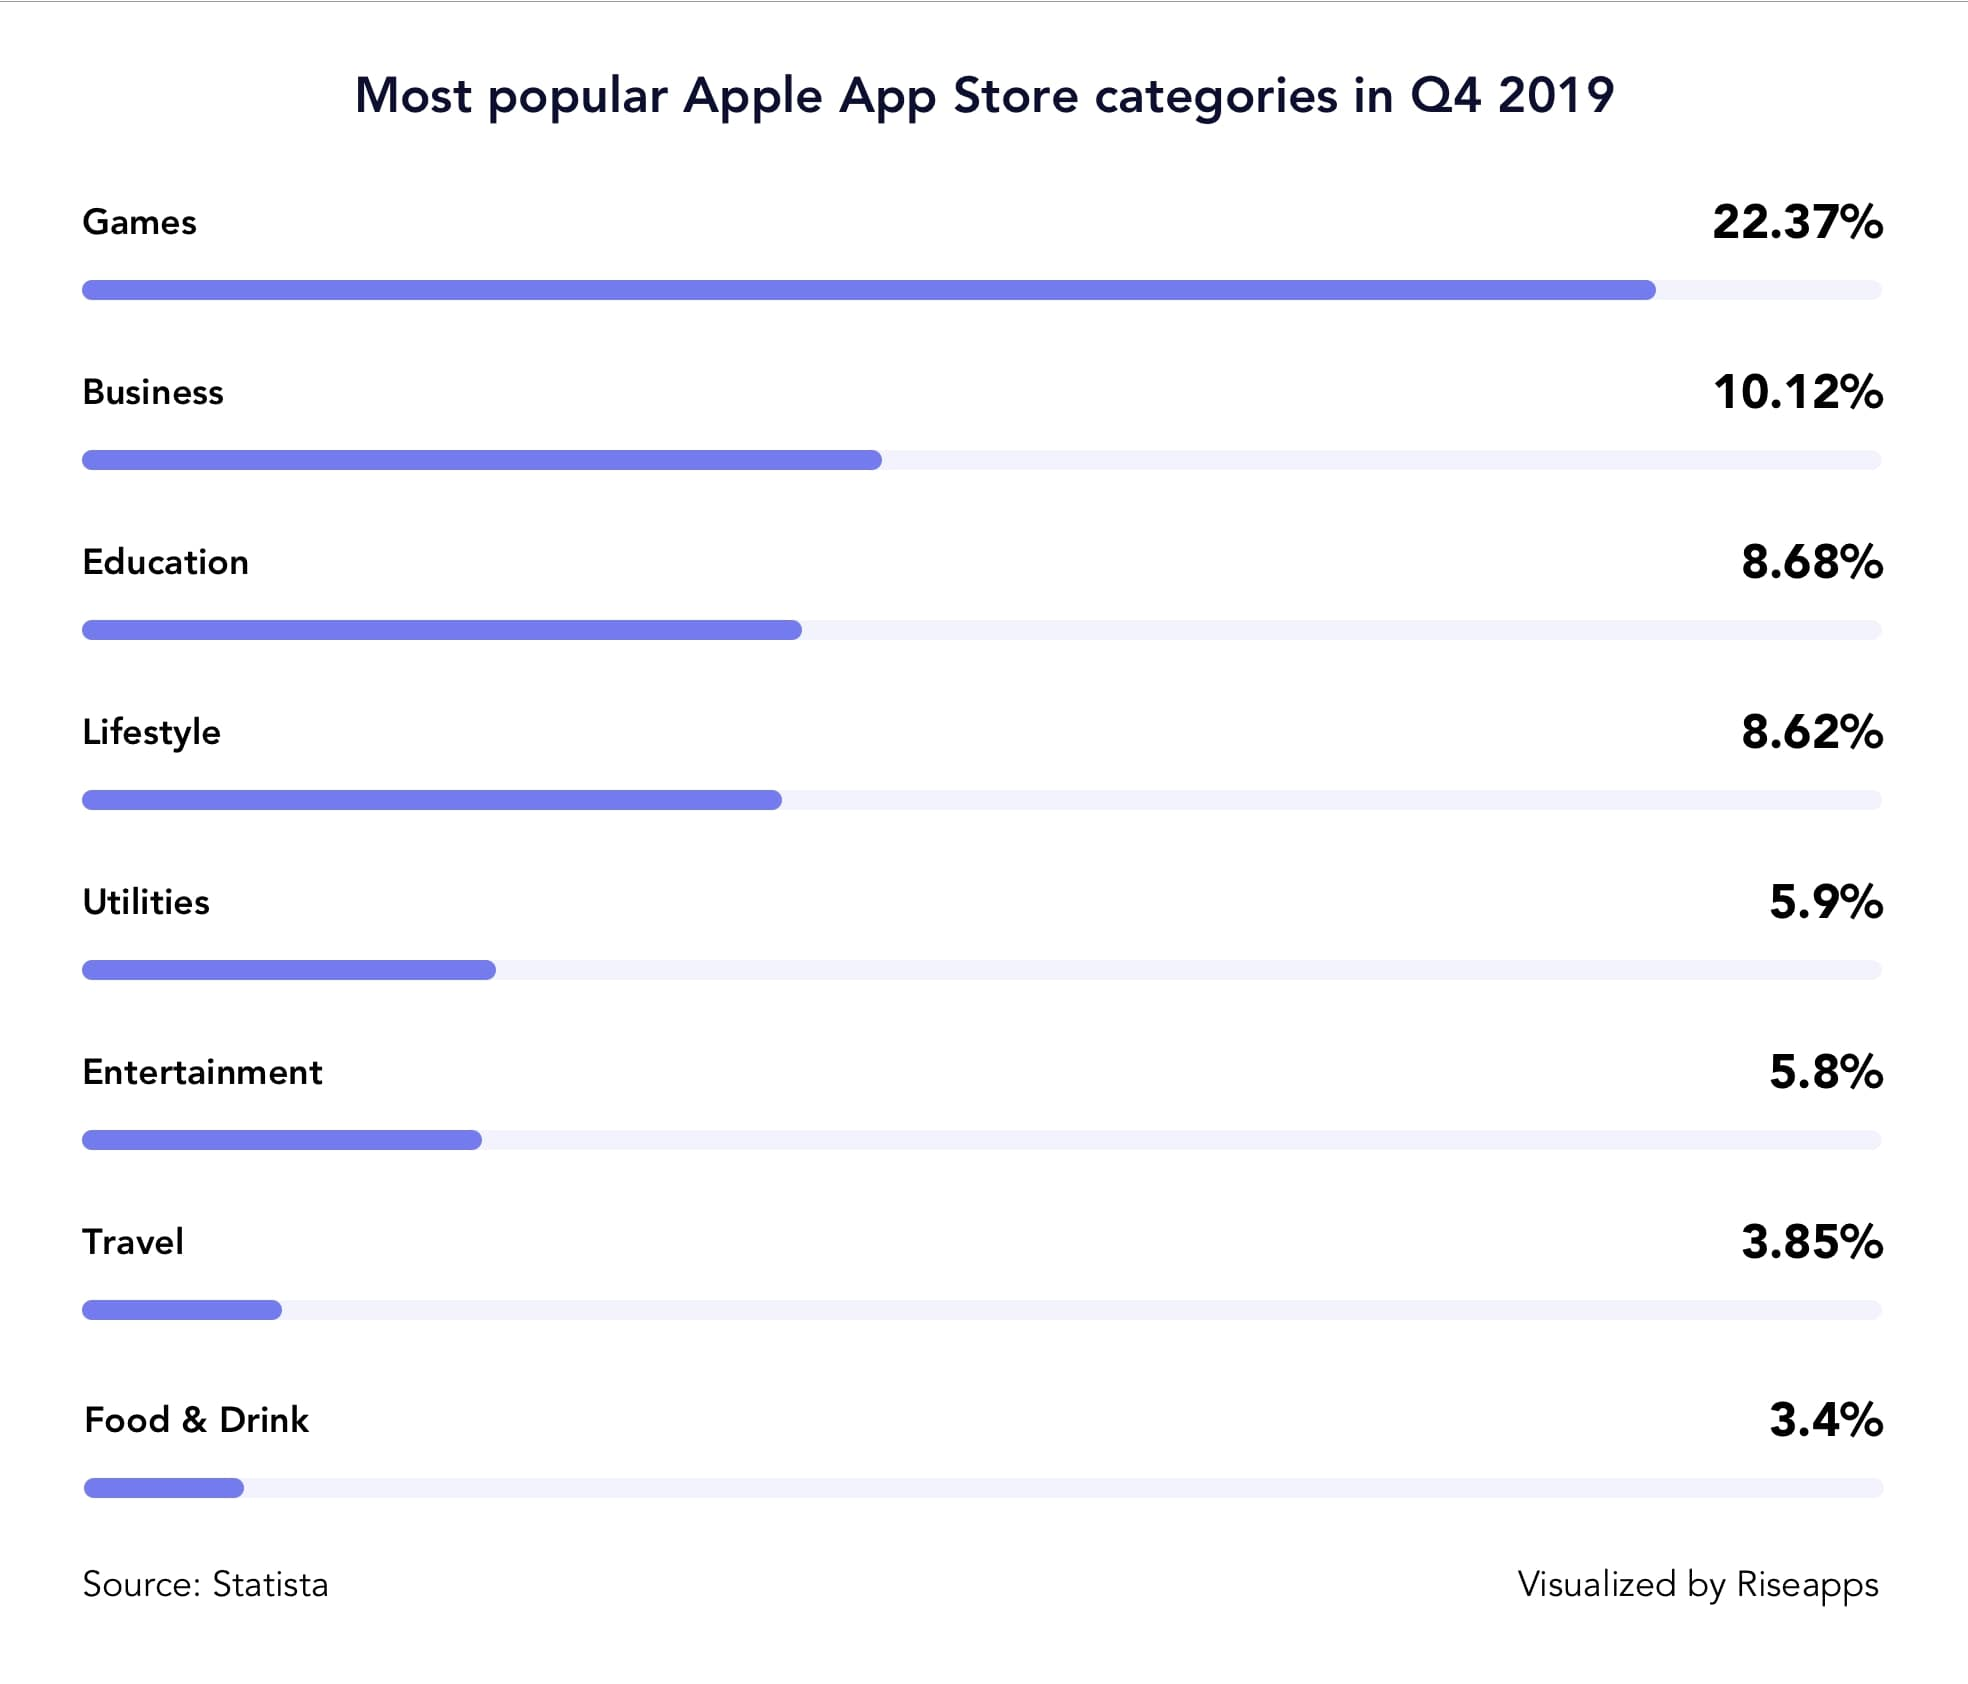 Most popular Apple App Store categories in Q4 2019